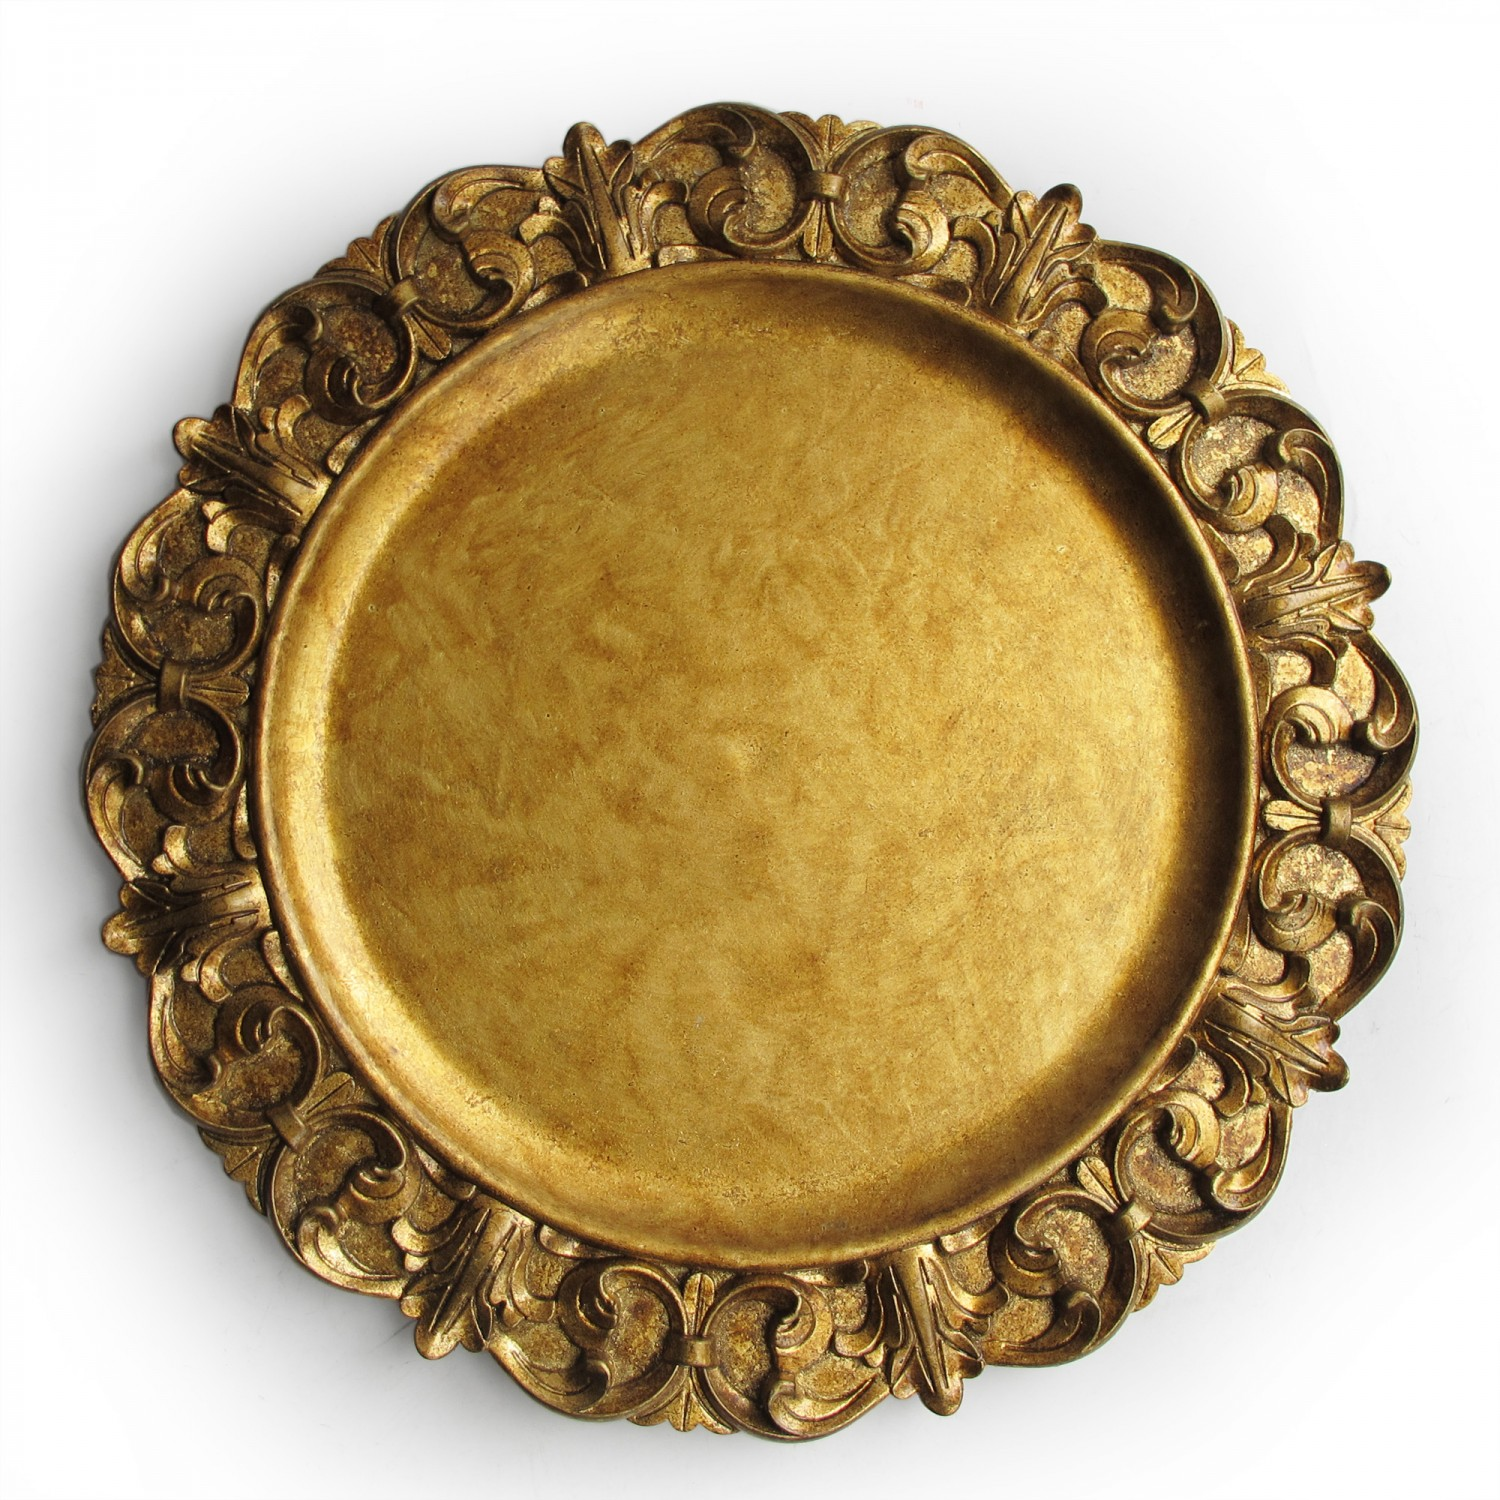 The Jay Companies 1320391 Round Embossed Gold Charger Plate 14""